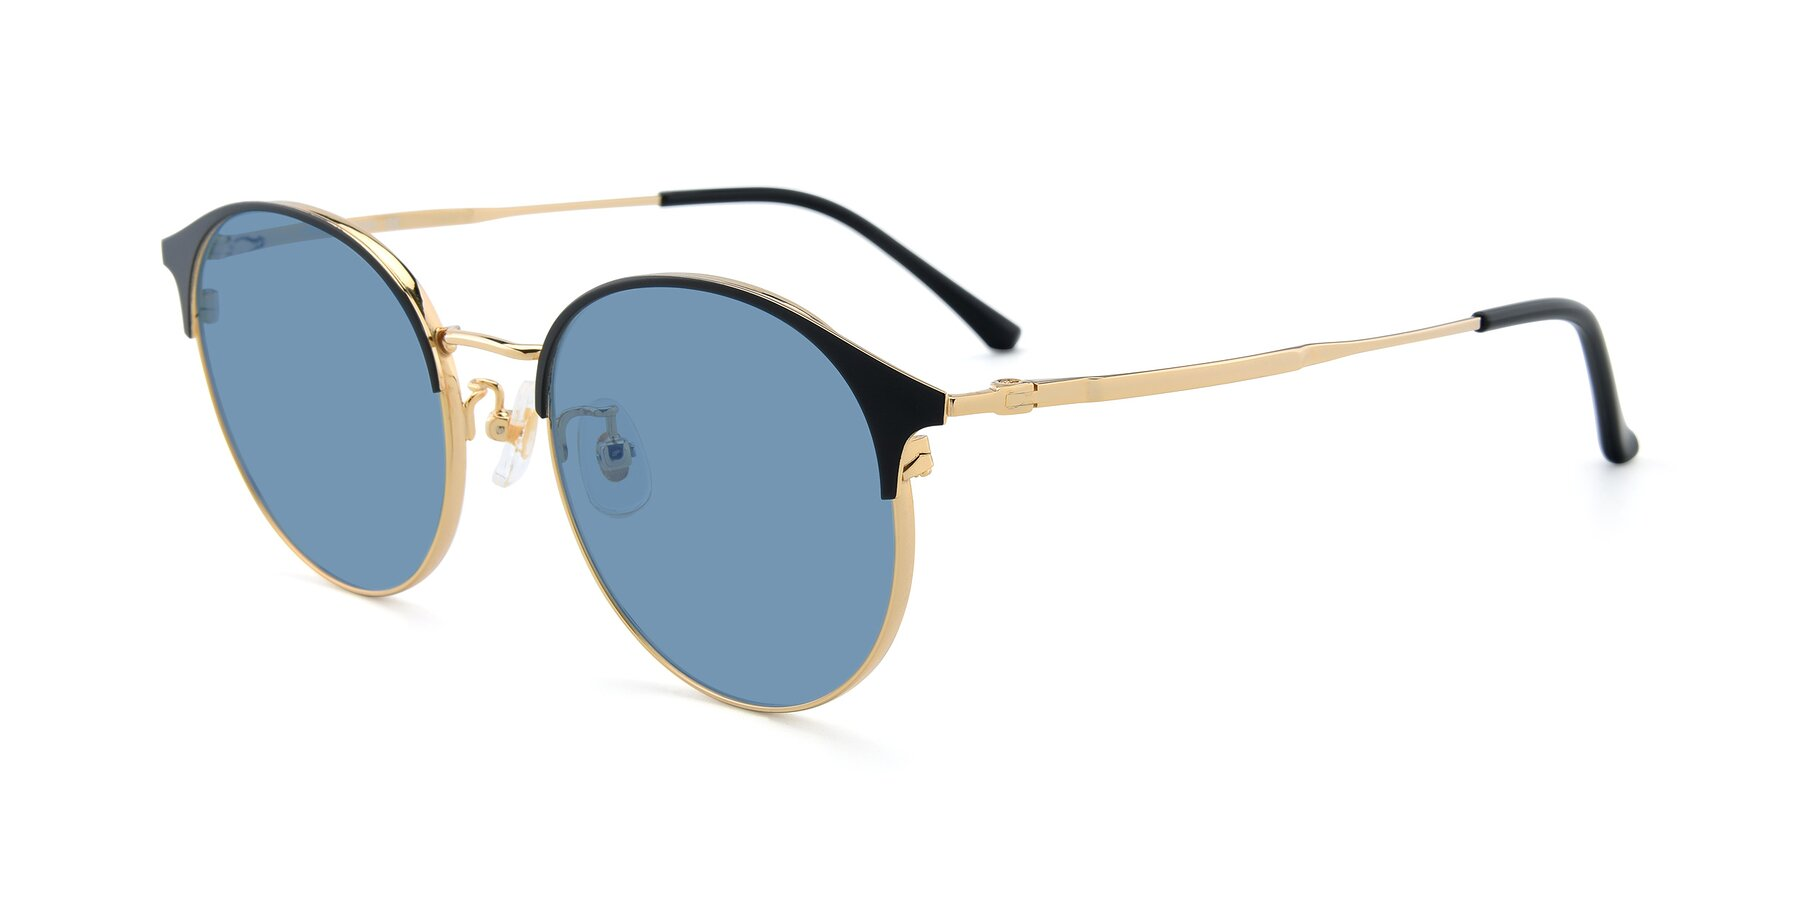 Angle of XC-8031 in Black-Gold with Medium Blue Tinted Lenses